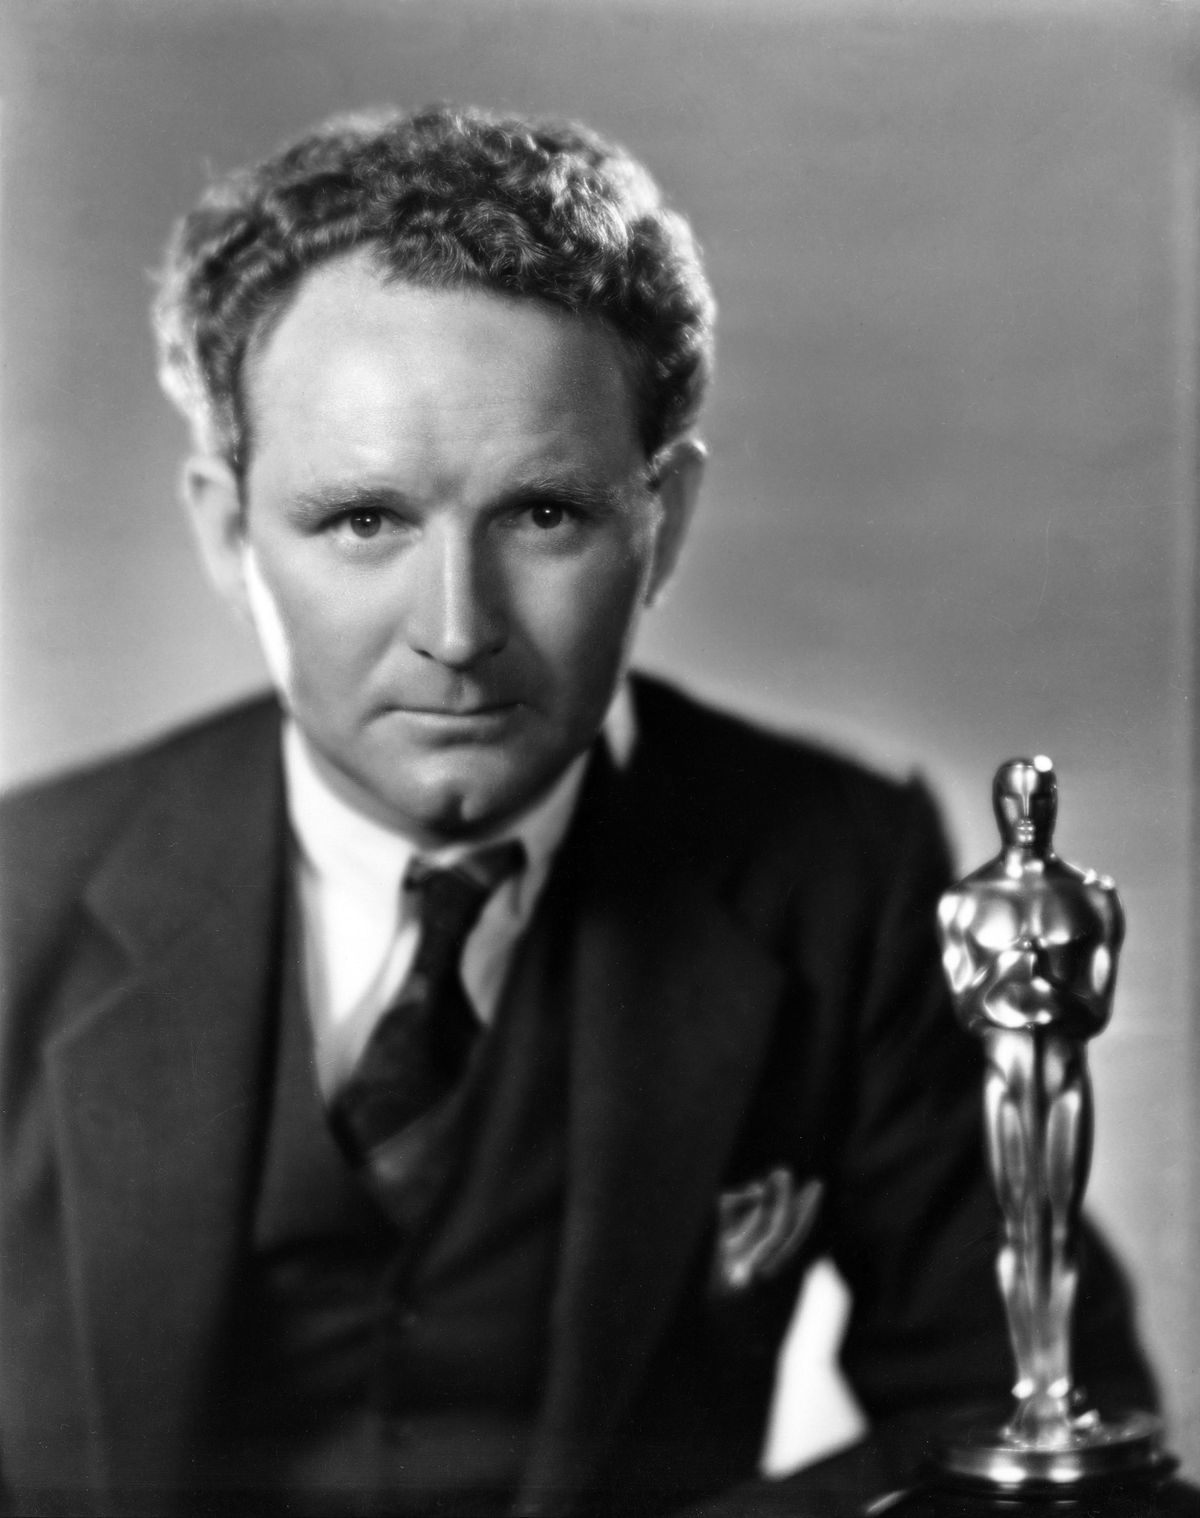 Director Frank Borzage with his 1929 Academy Award.